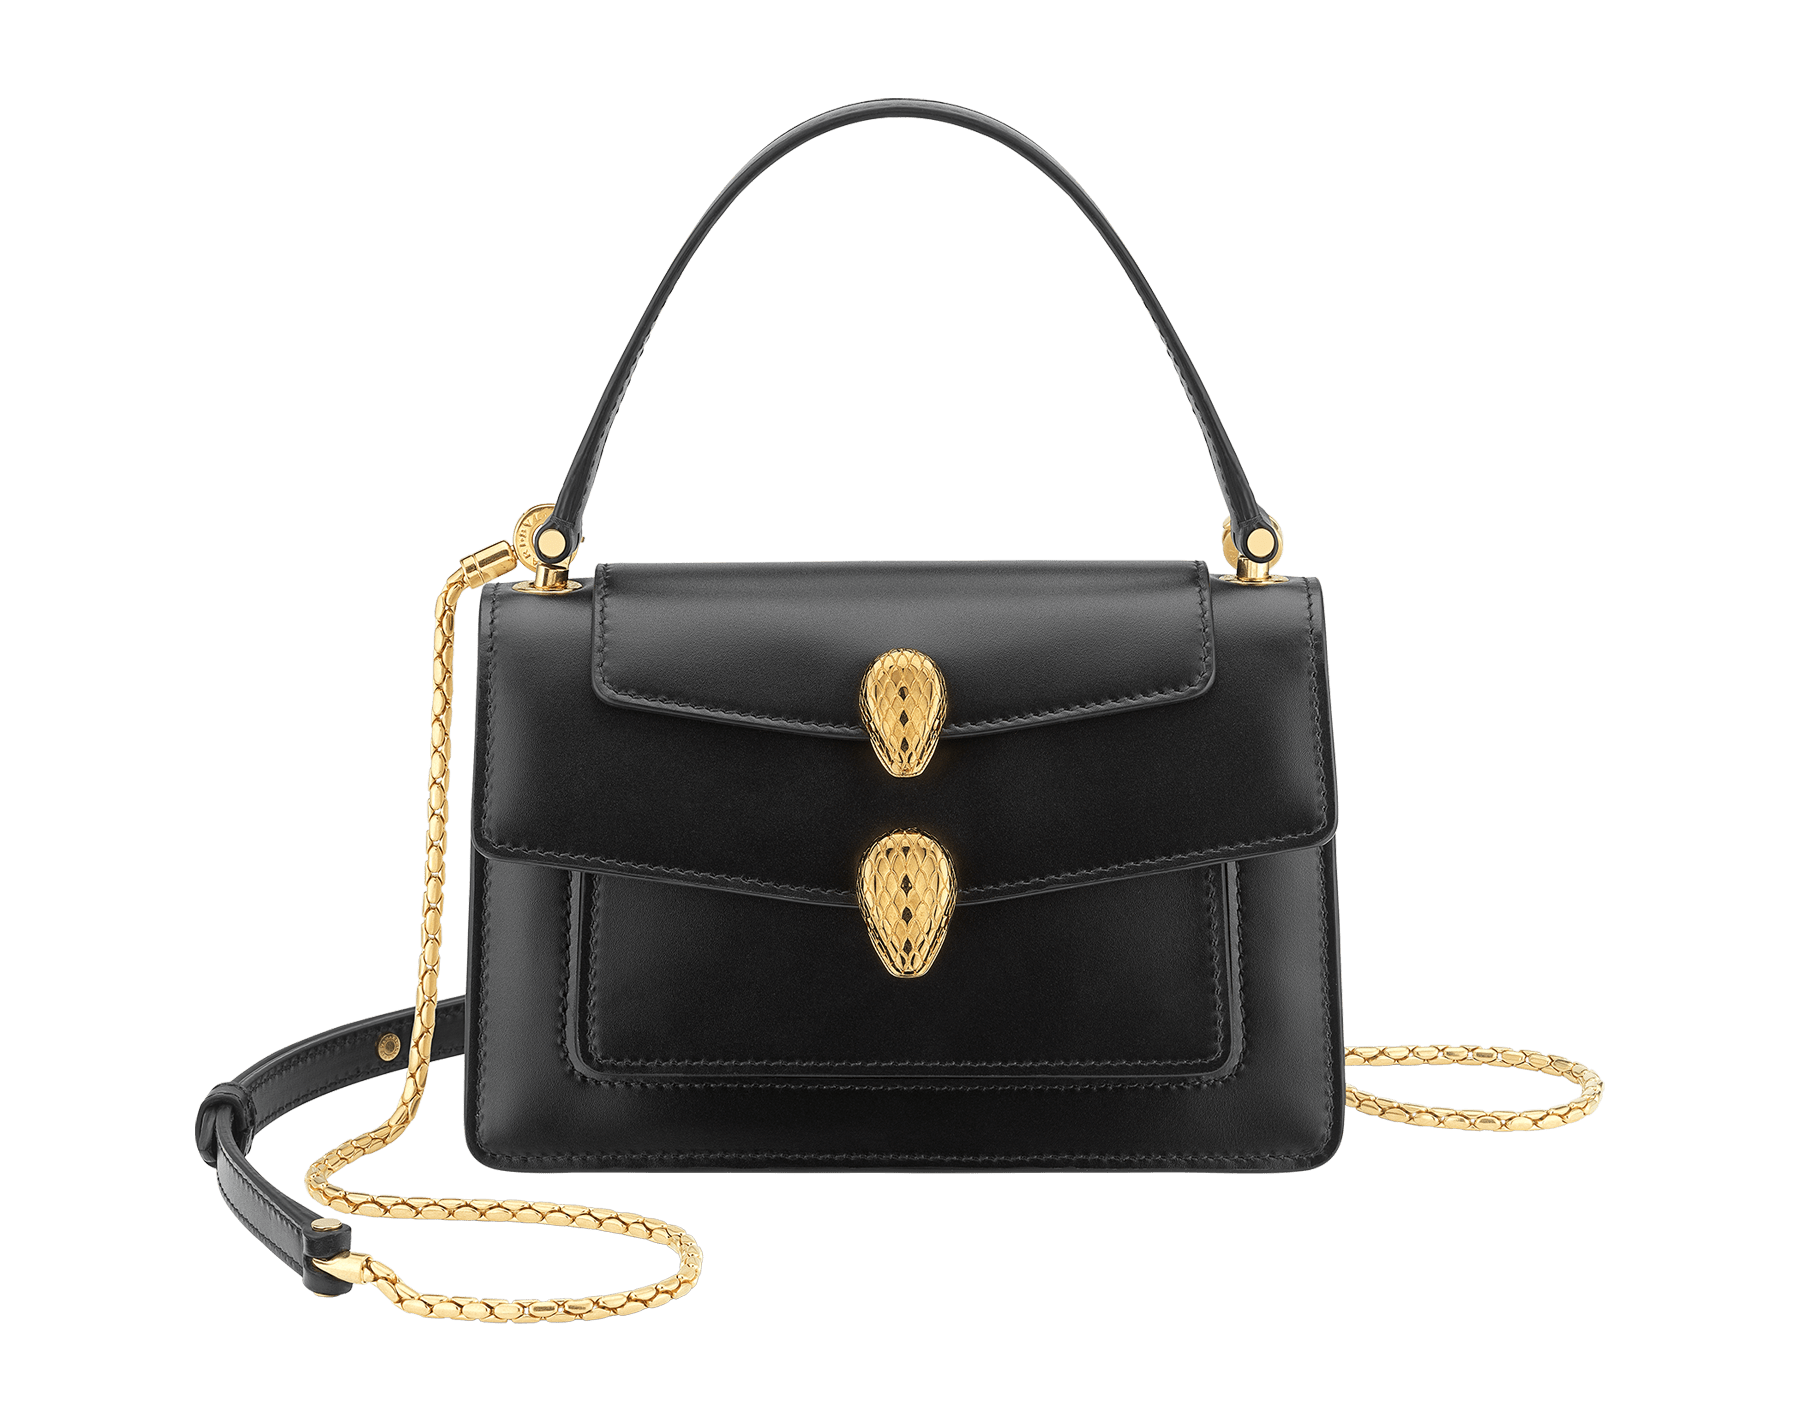 Alexander Wang x Bvlgari belt bag in smooth black calf leather. New double Serpenti head closure in antique gold plated brass with tempting red enamel eyes. Limited edition. 288737 image 1